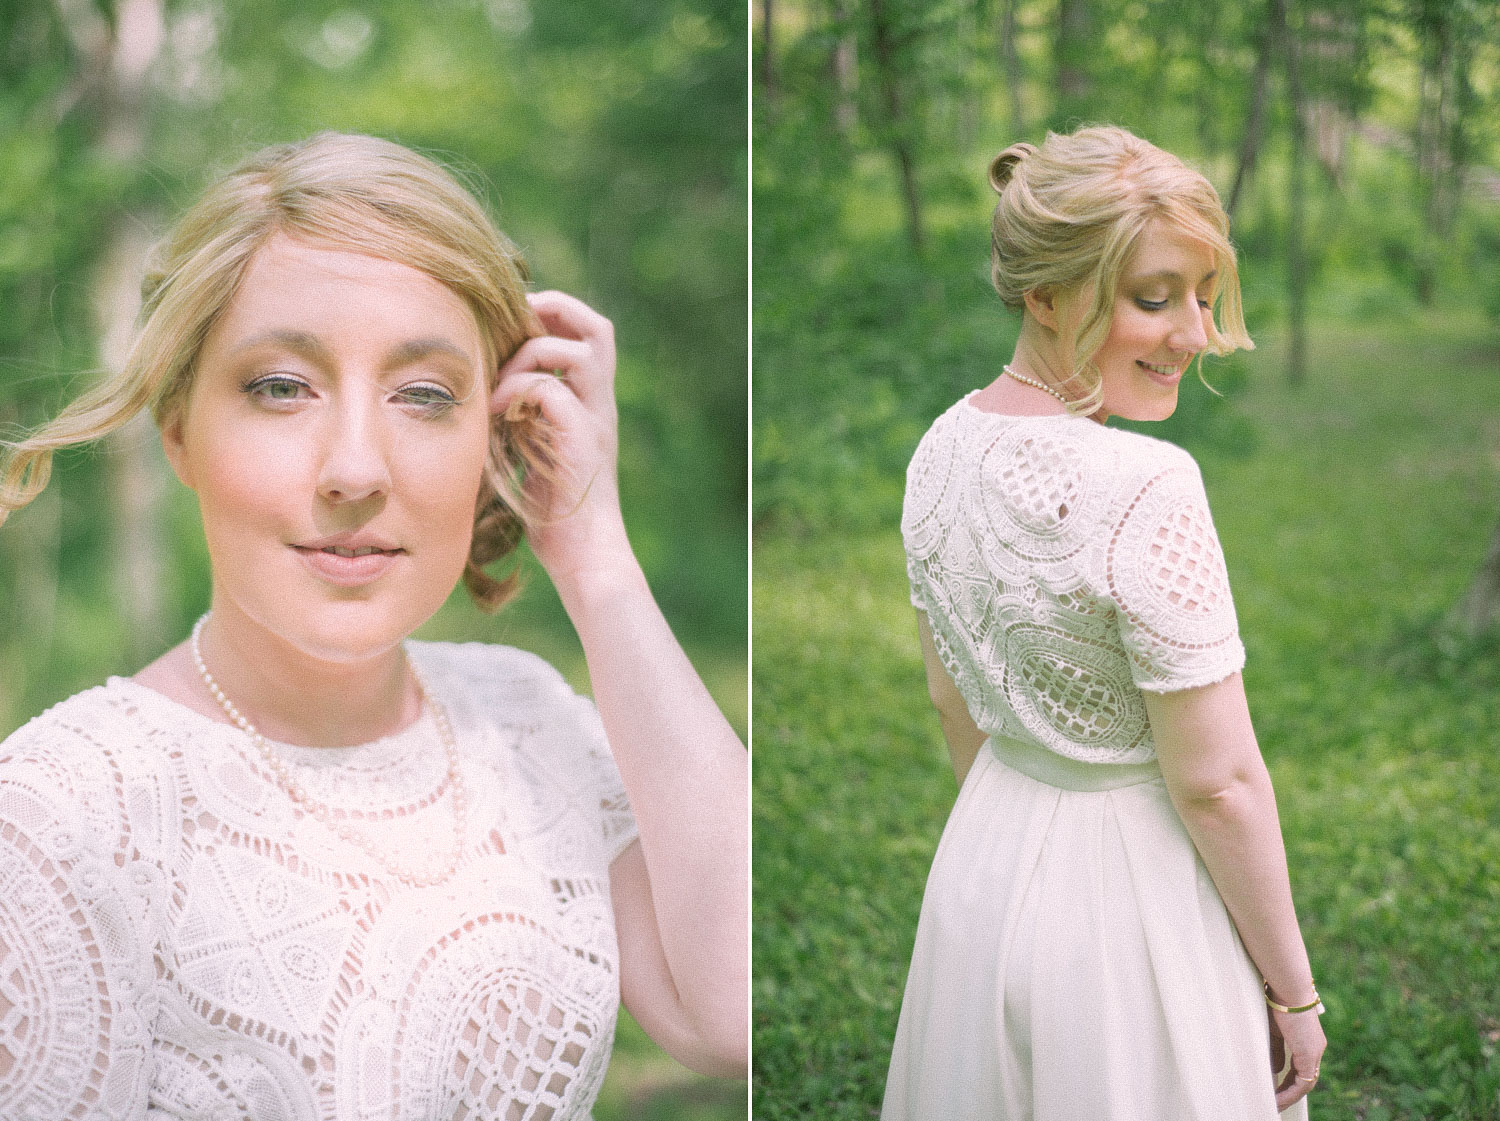 Atlanta Wedding Photographer | LeahAndMark & Co. | Sugarboo Farms | North Georgia